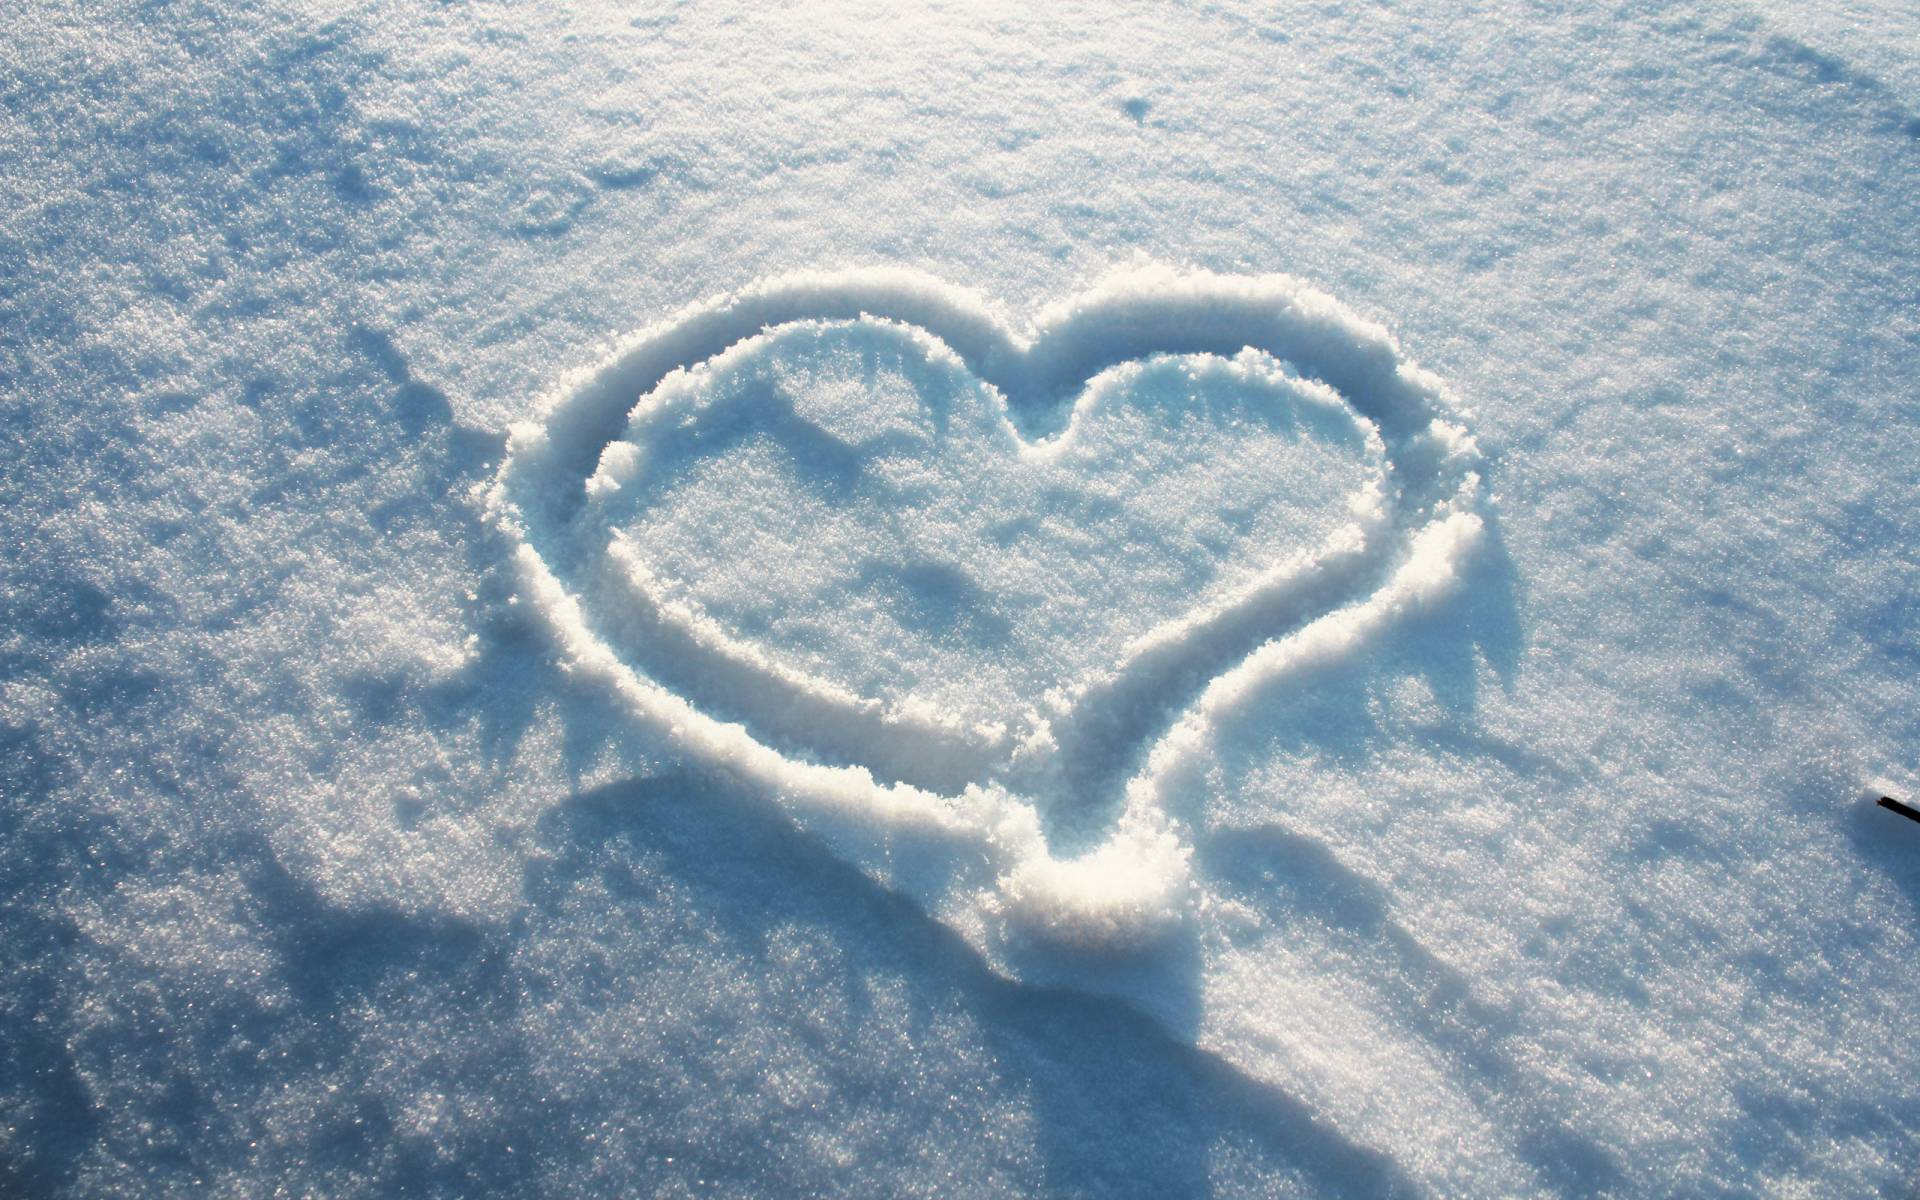 Winter-Love-Wallpapers-Background-HD-Wallpaper